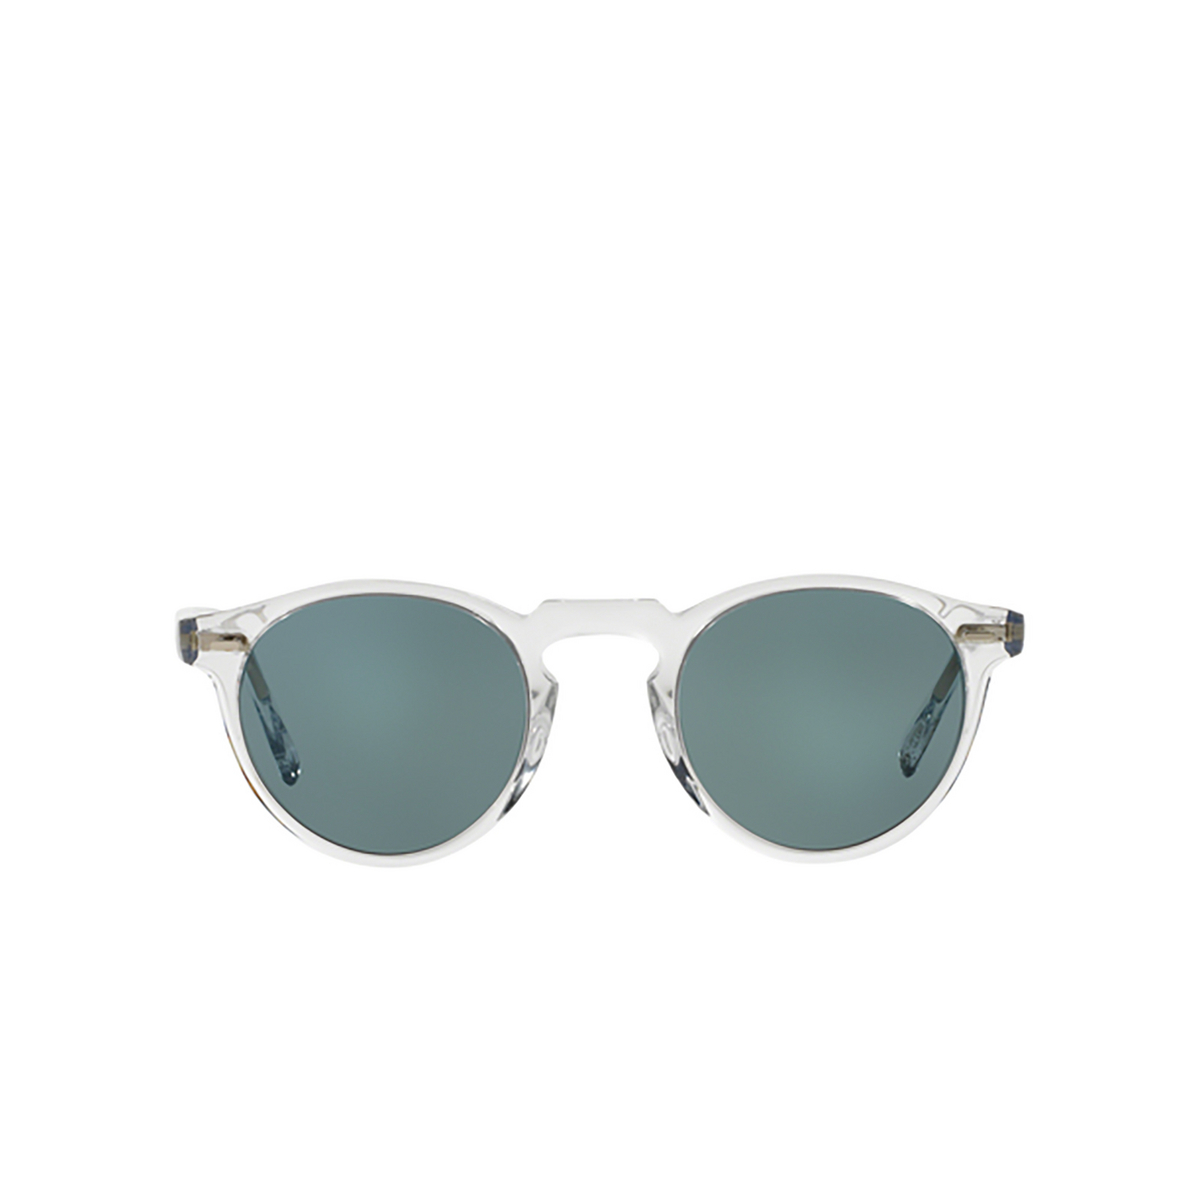 Oliver Peoples® Round Sunglasses: Gregory Peck Sun OV5217S color Crystal 1101R8 - front view.